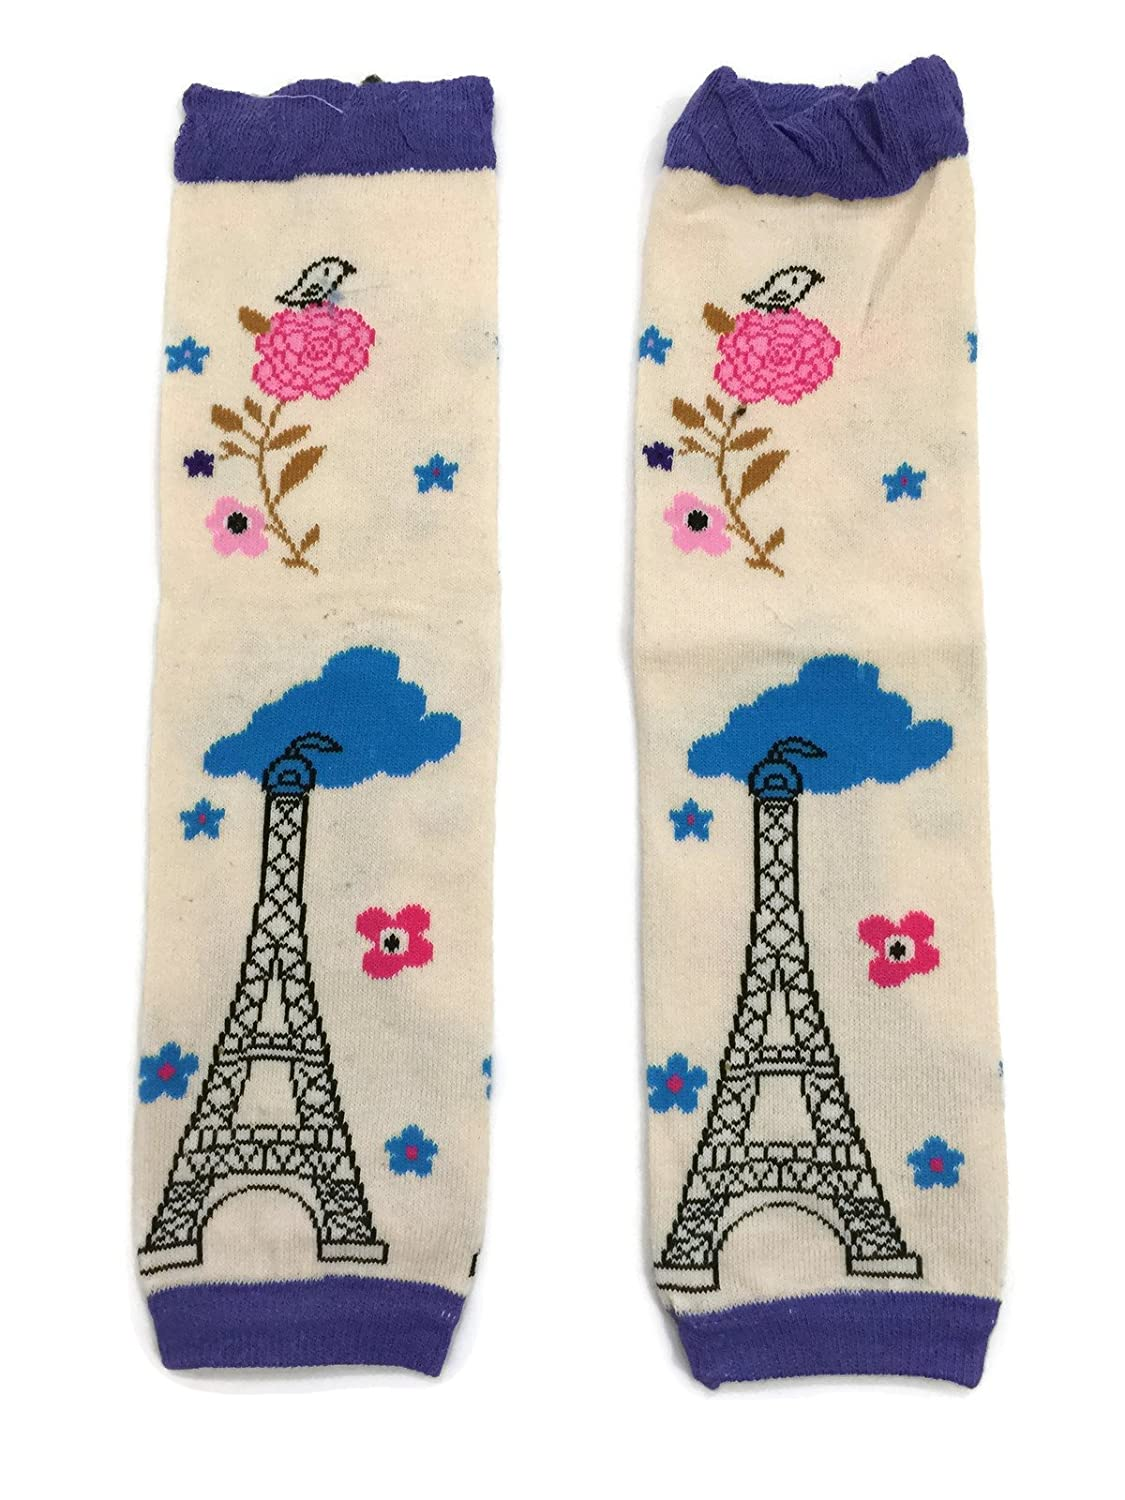 Rush Dance Purple Paris Eiffel Tower for Boys or Girls Baby/Toddler Leg Warmers